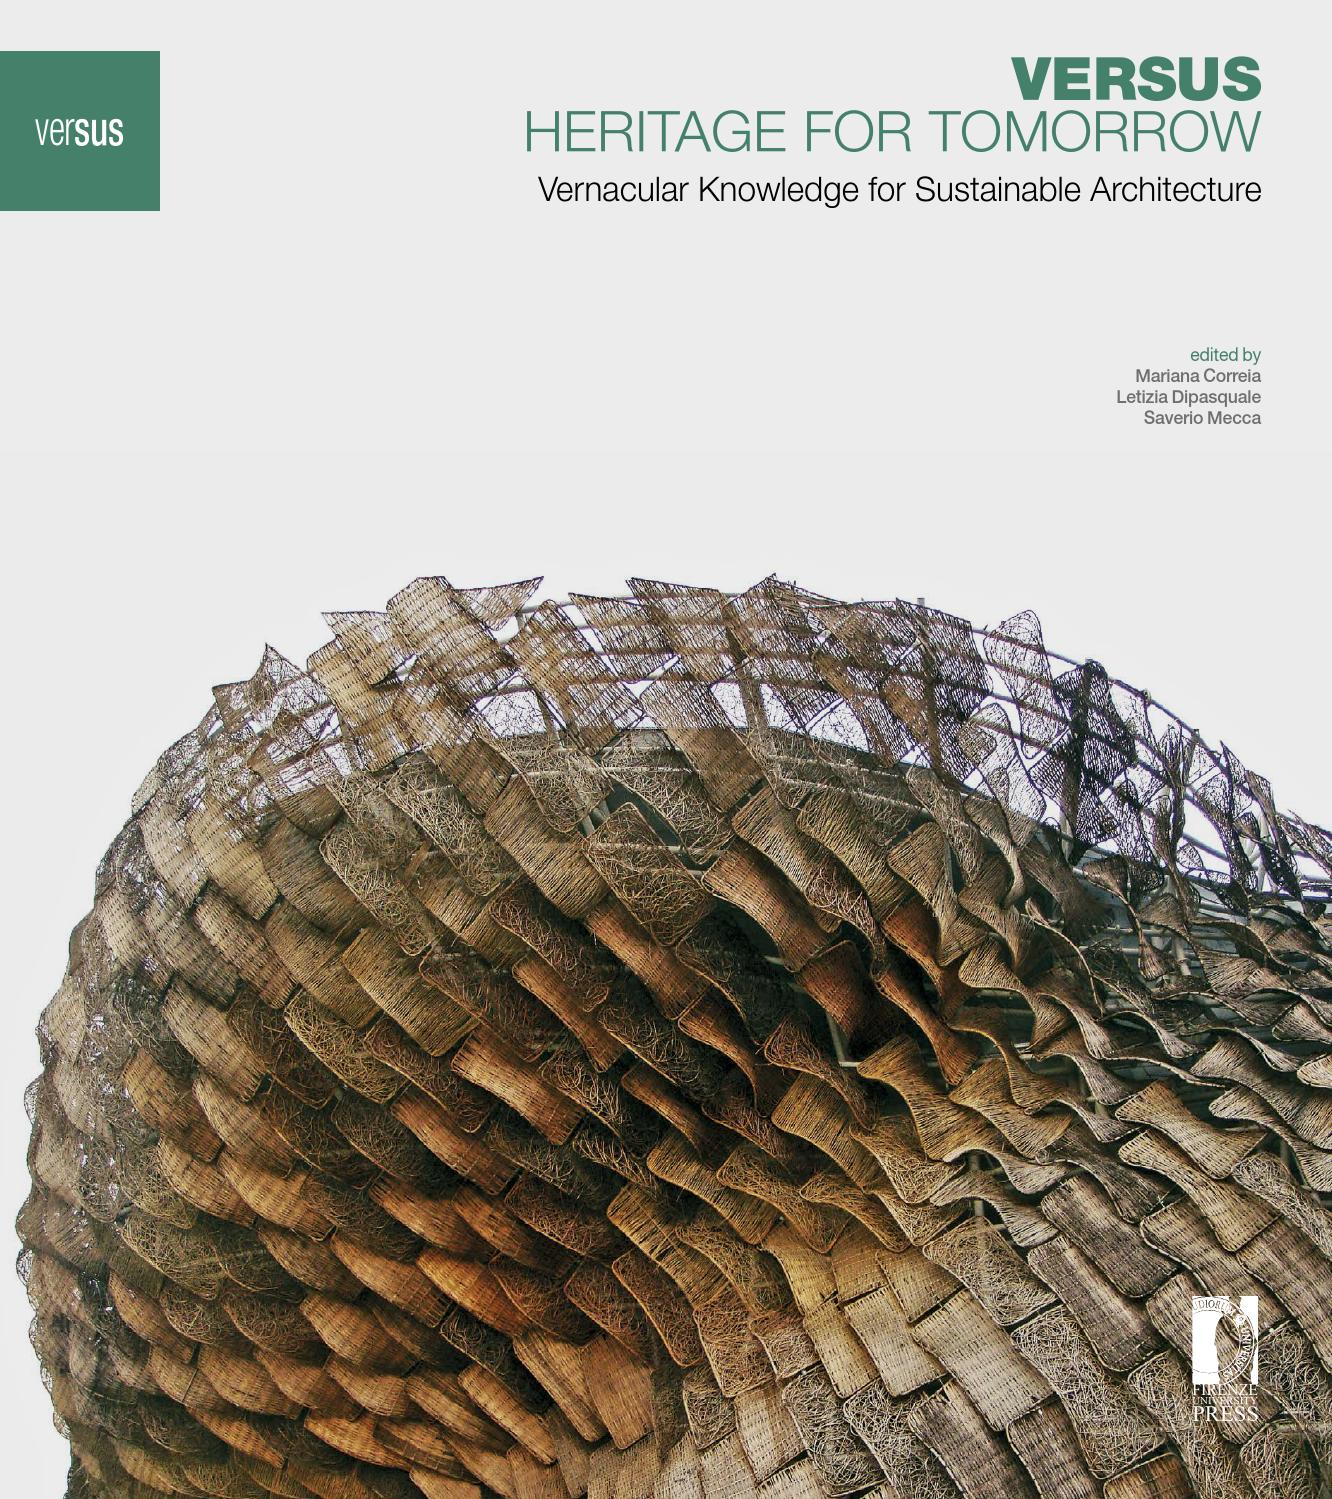 Case Passive In Muratura versus, heritage for tomorrow by dida - issuu